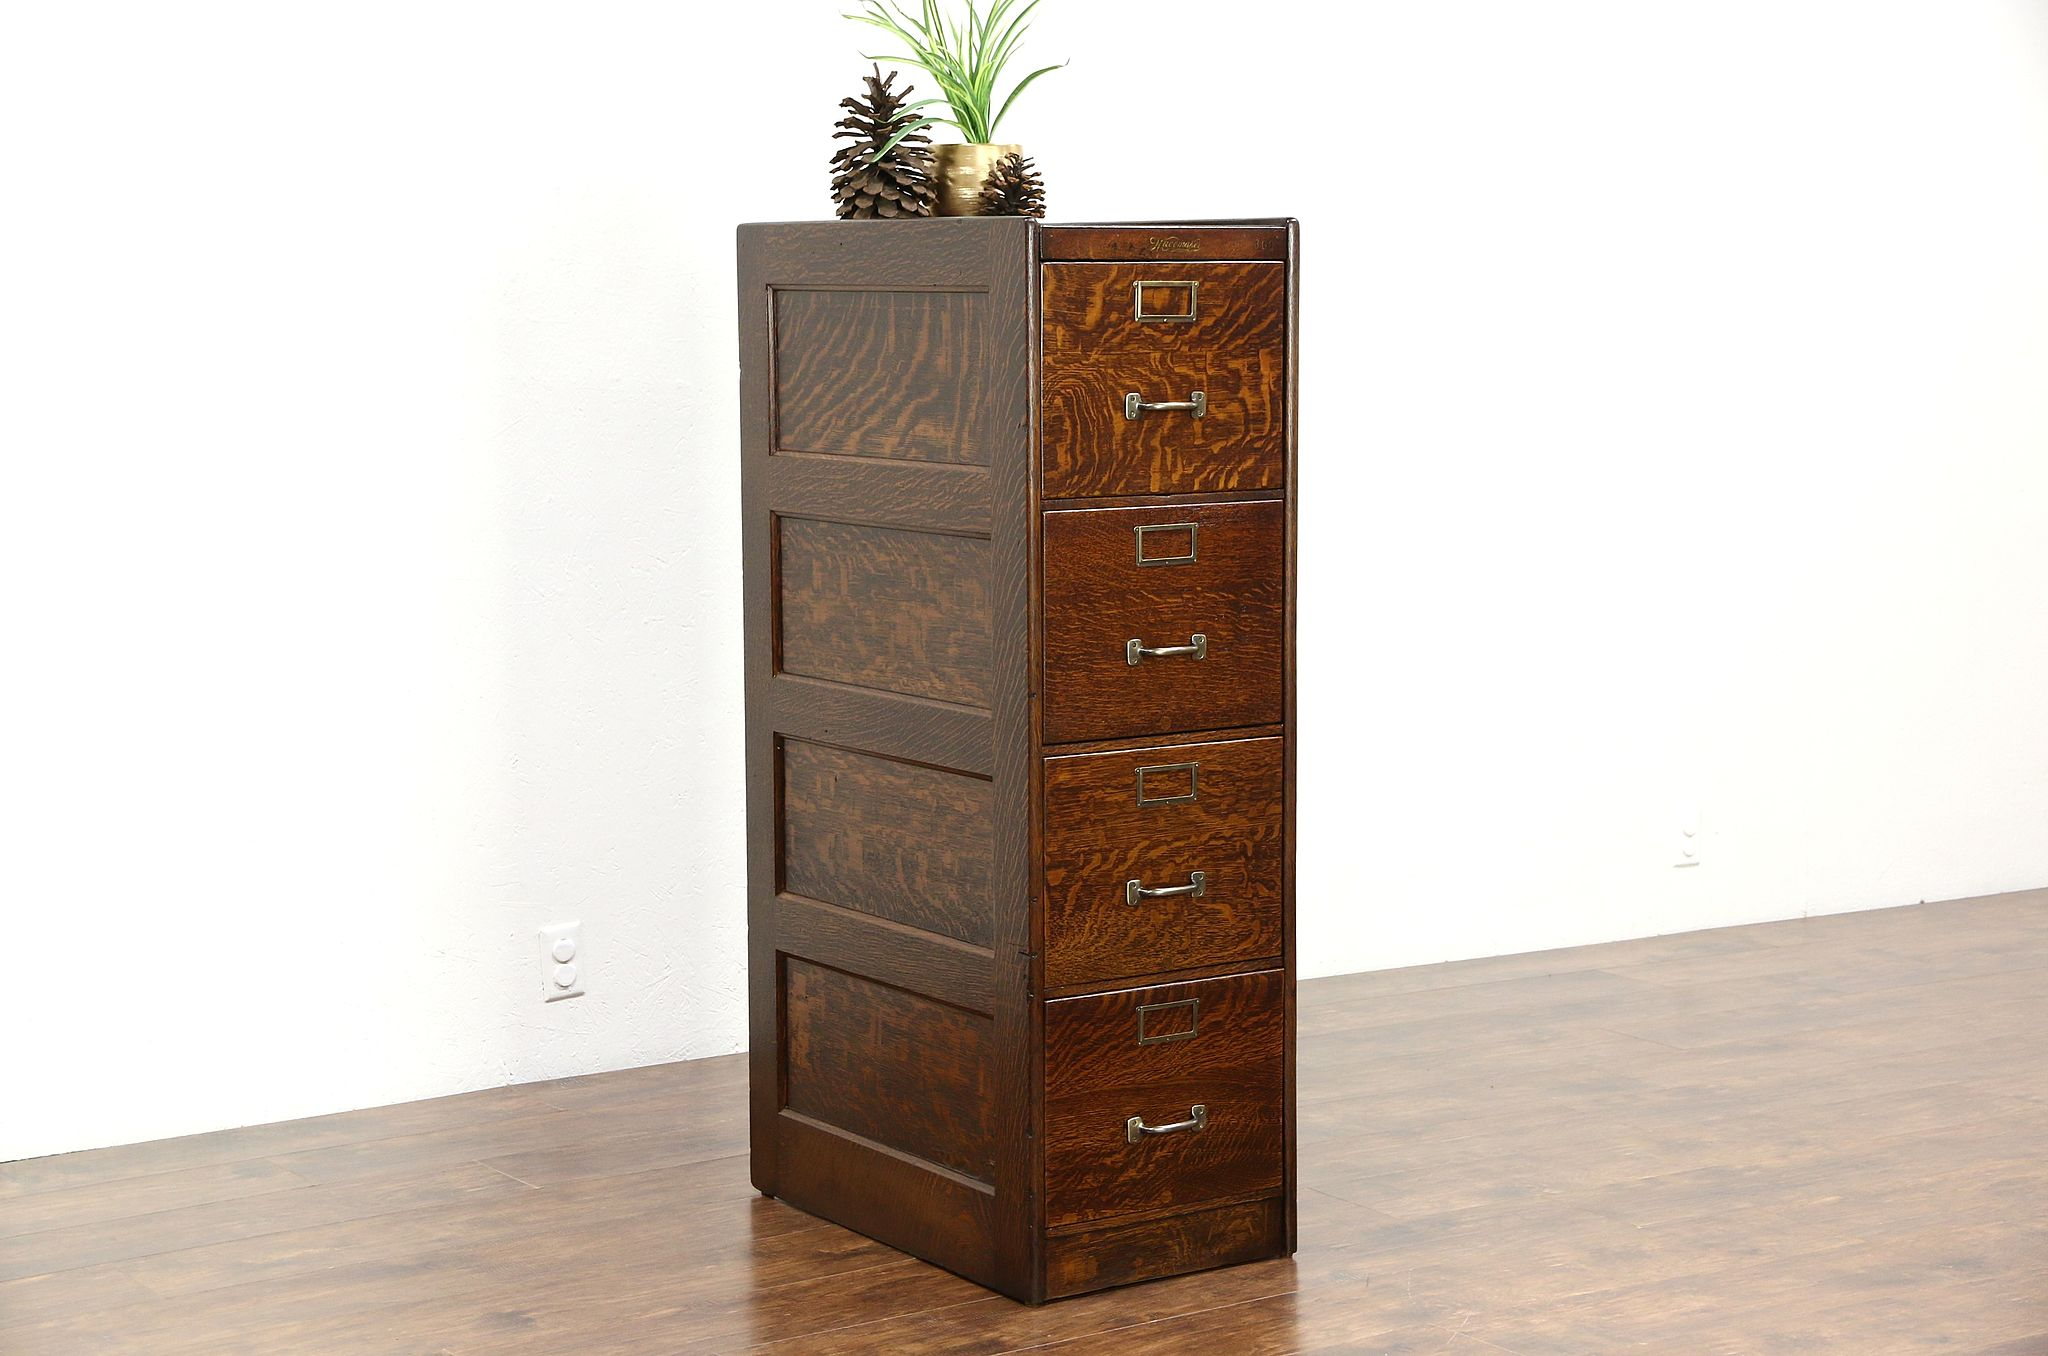 sold - quartersawn oak 1910 antique 4 drawer file cabinet, signed 4 file cabinet